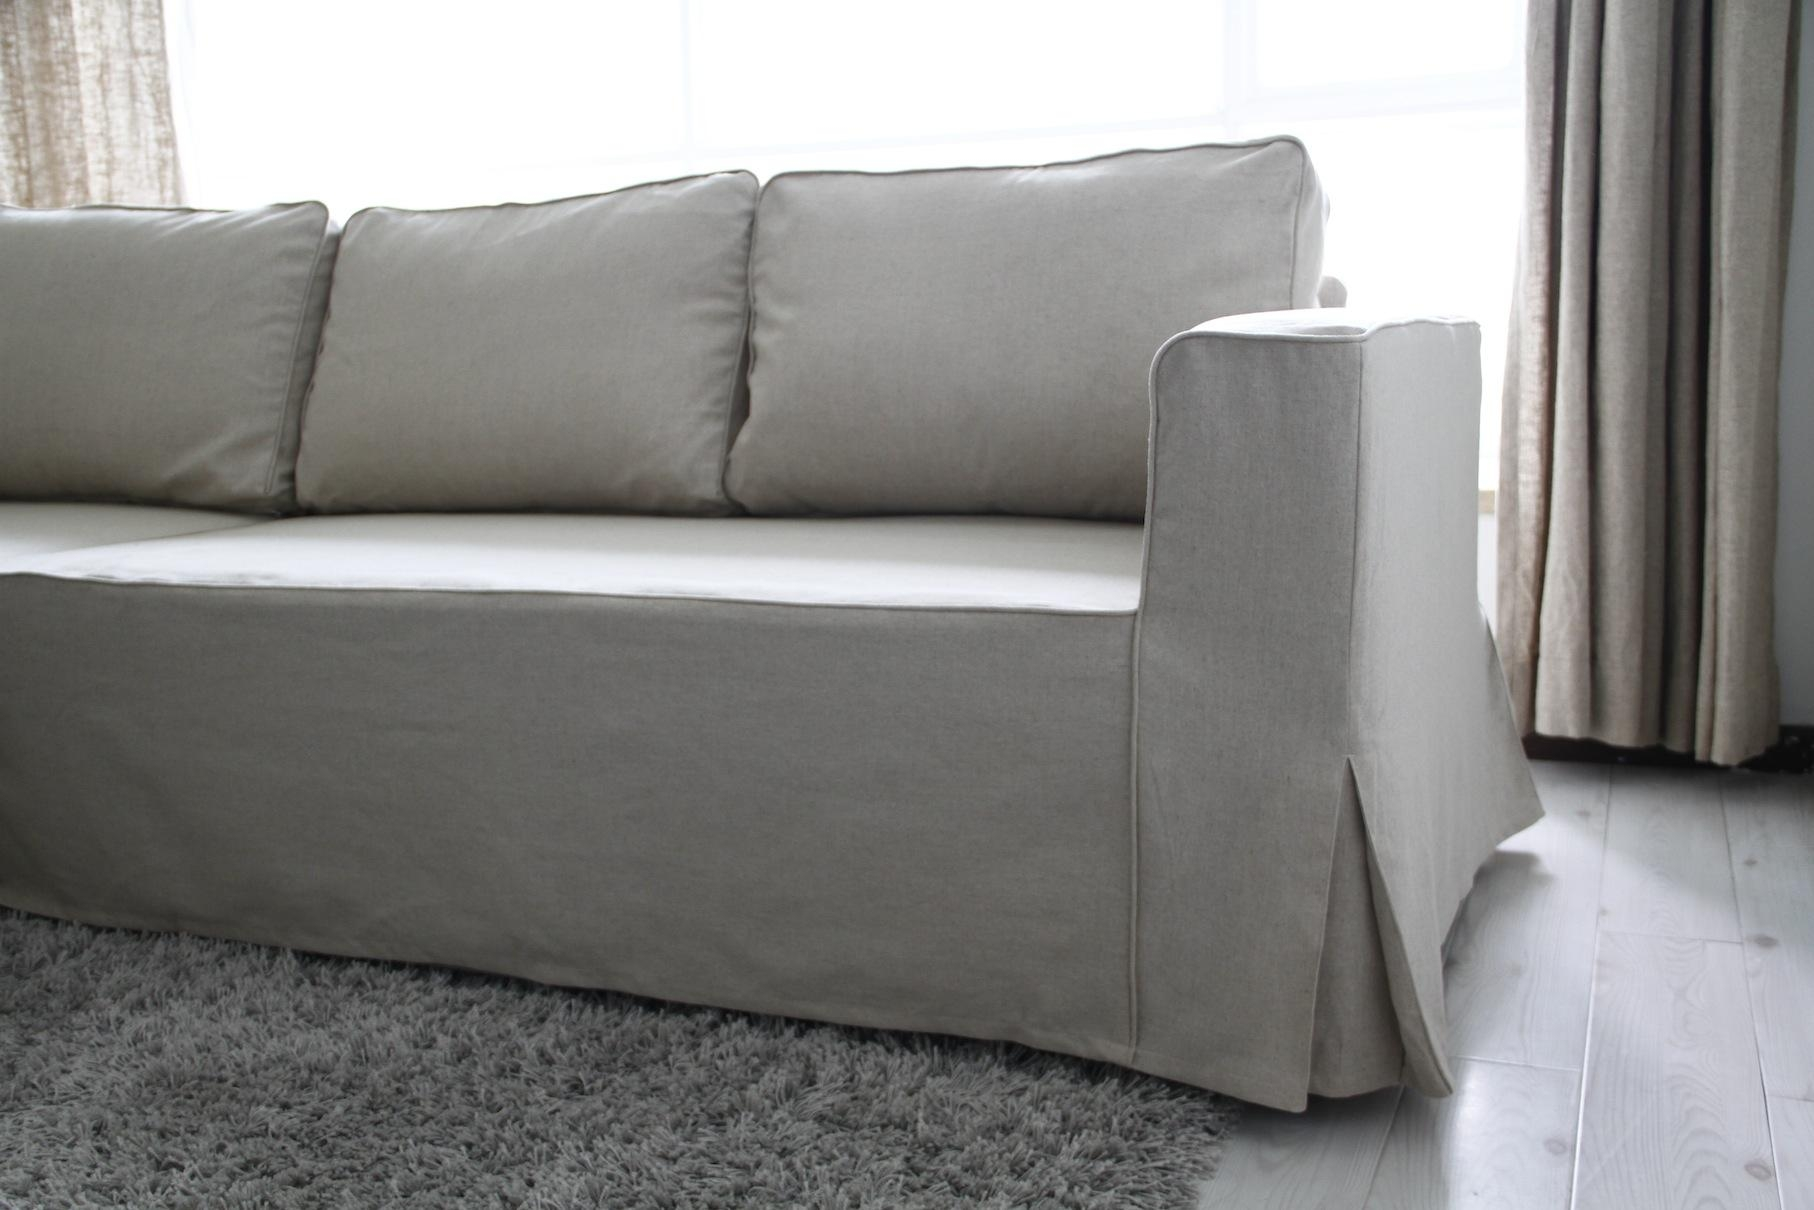 Individual Couch Seat Cushion Covers – Velcromag For Individual Couch Seat Cushion Covers (View 3 of 20)